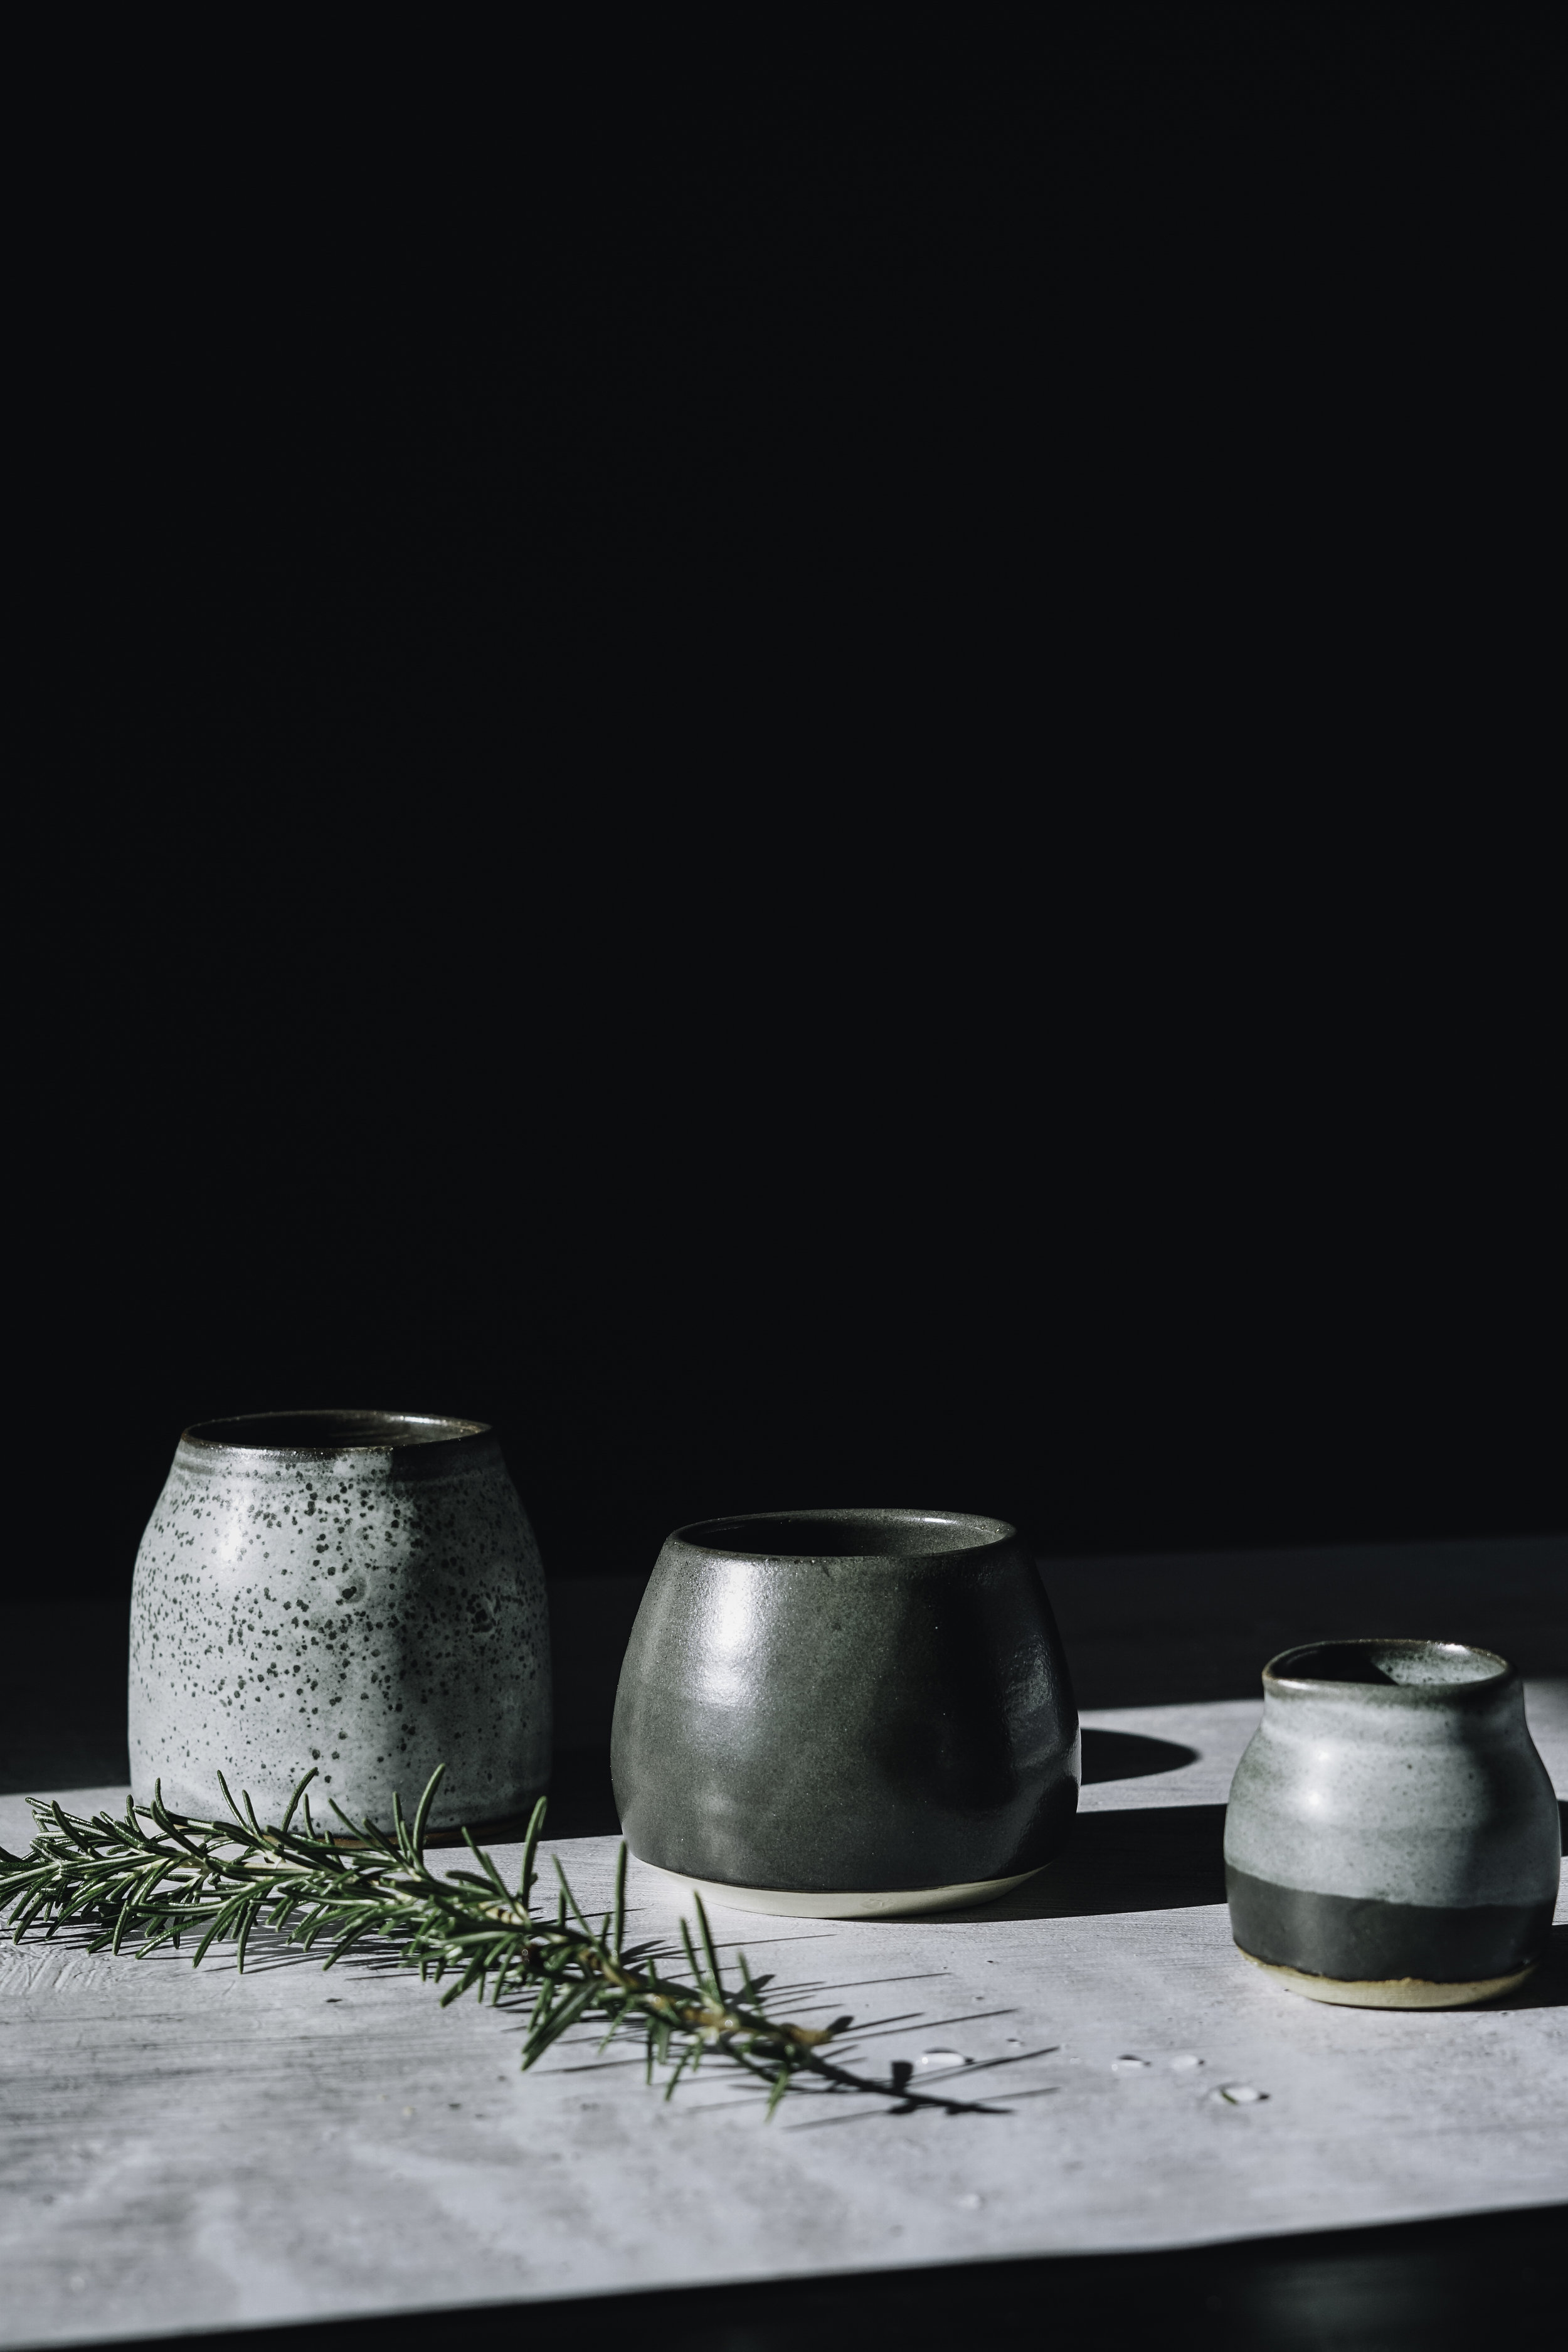 Fran Romano - A beautiful selection of handmade ceramic vessels which can be used as posy holders, for a morning coffee or bits and bobs. For the rustic decoratorFrom $30